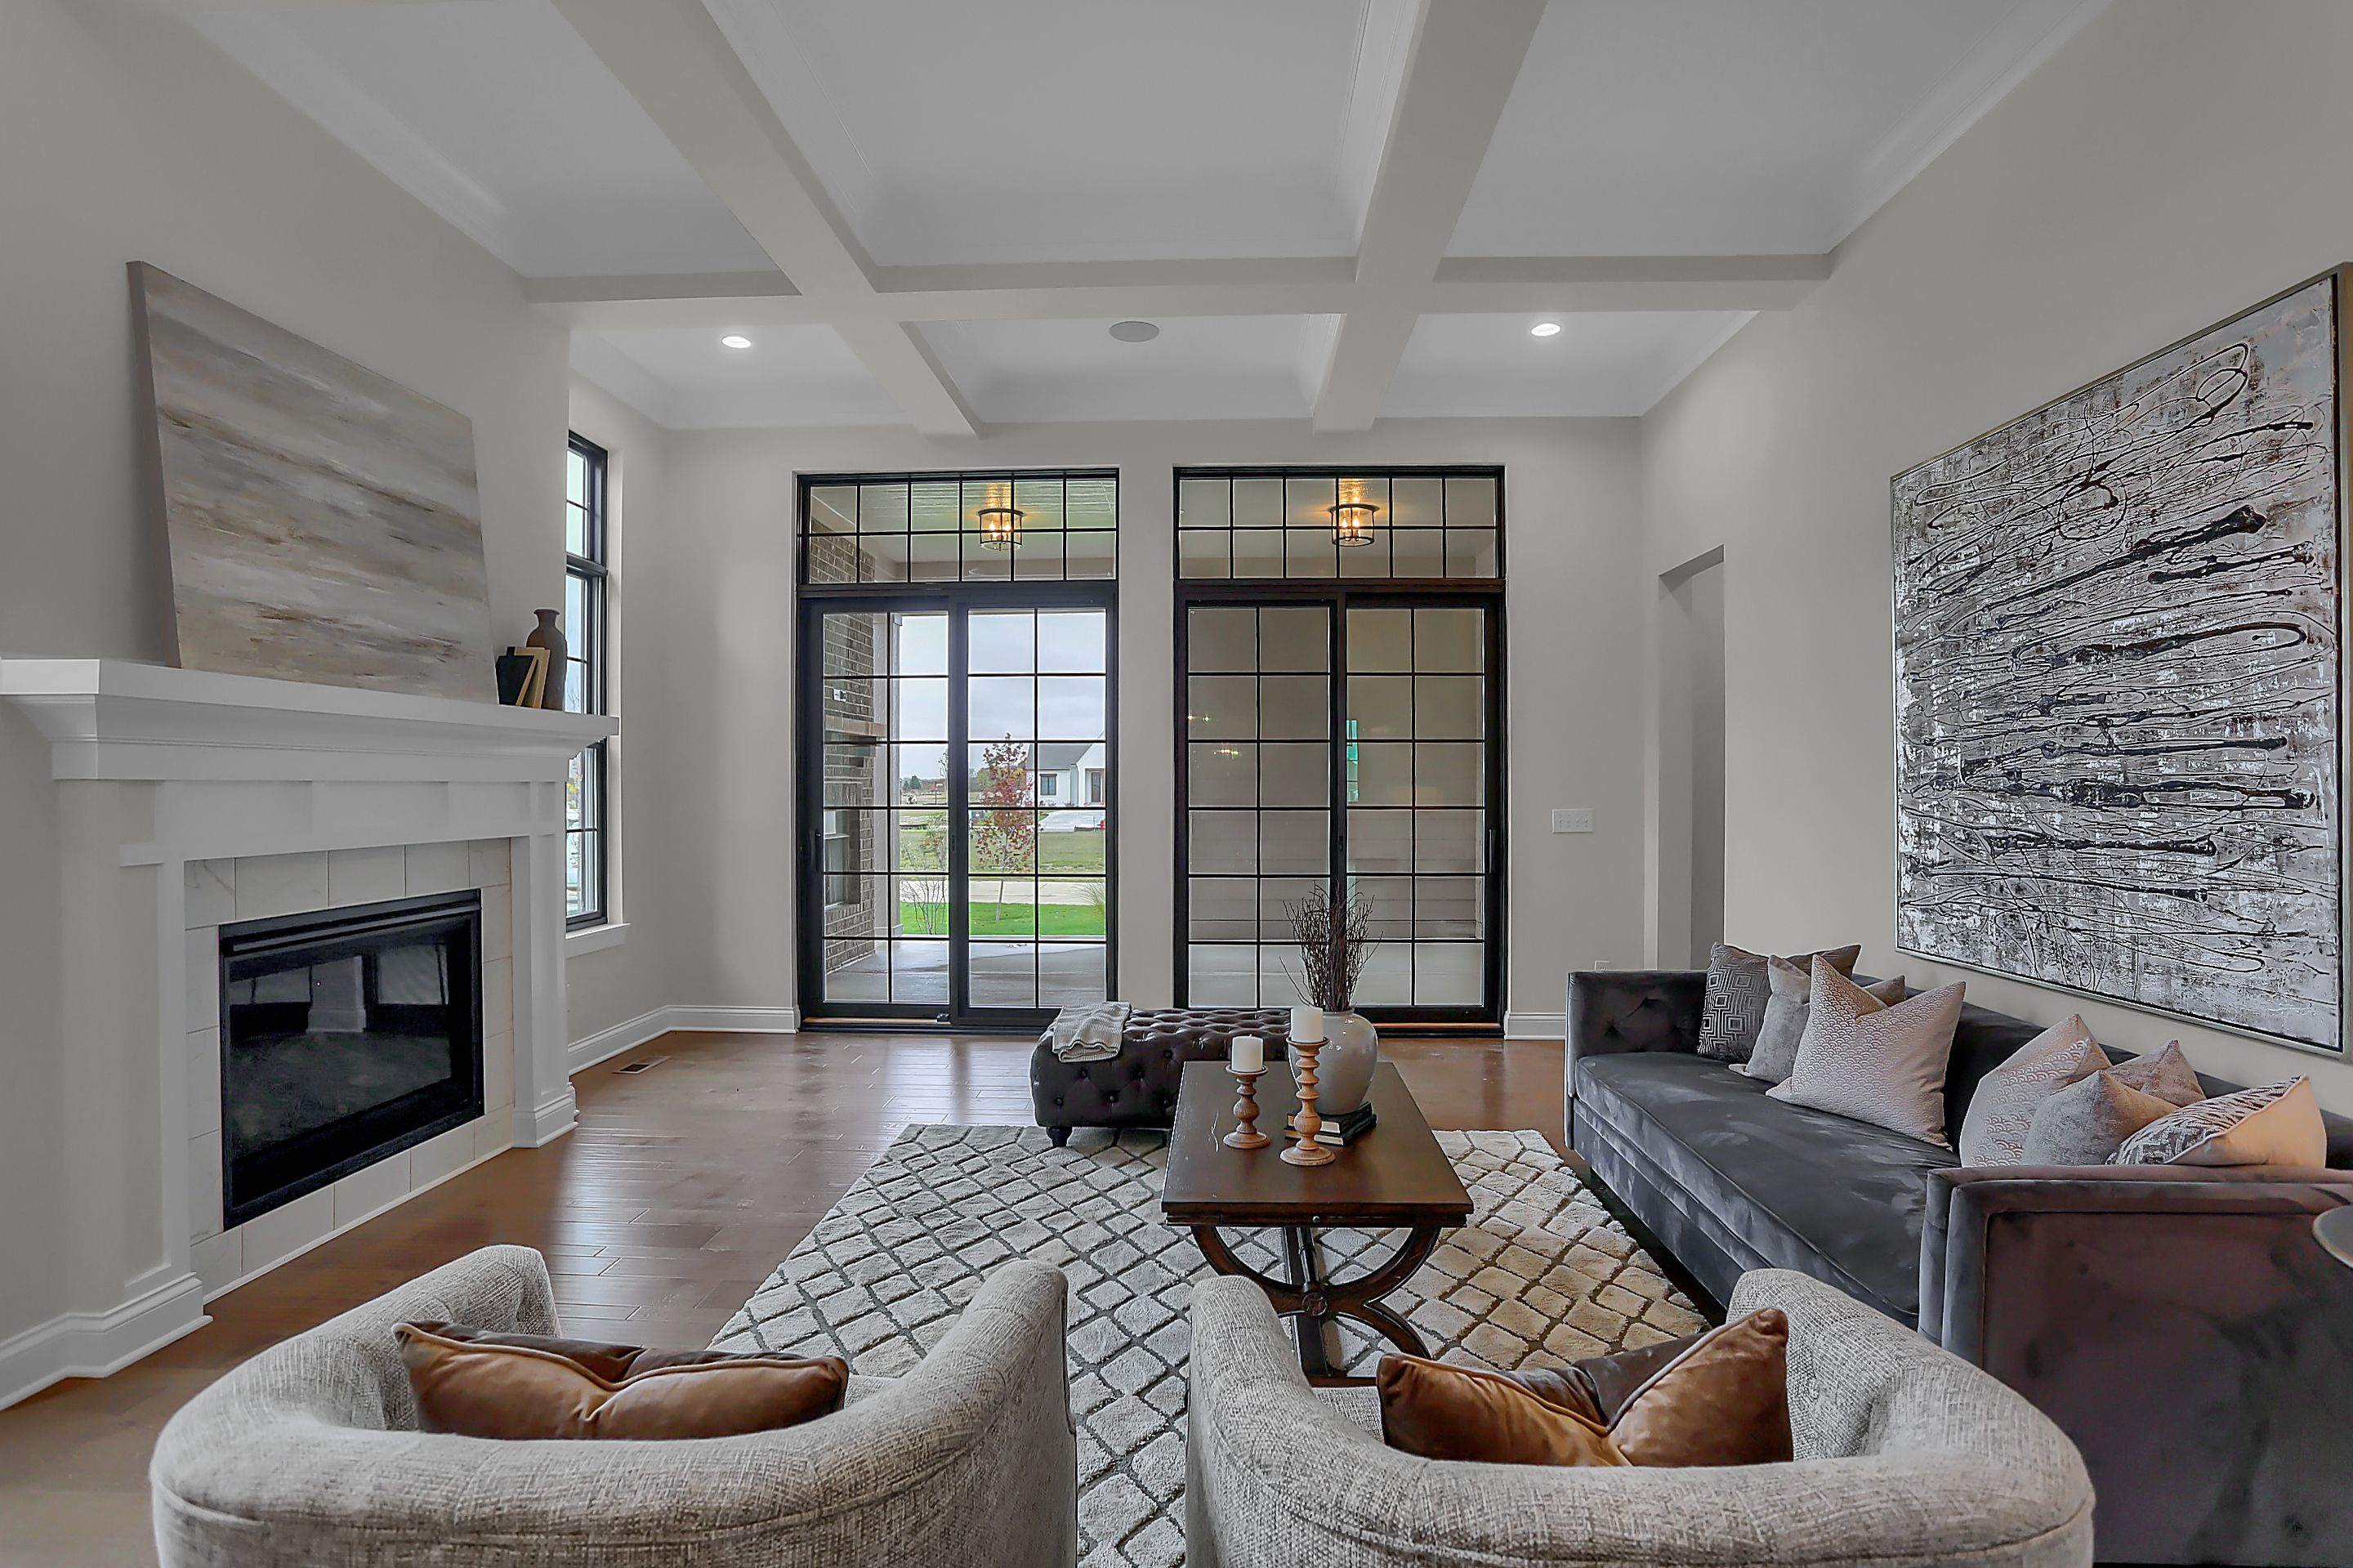 Living Area featured in the Lockerbie 303 By Estridge Homes in Indianapolis, IN